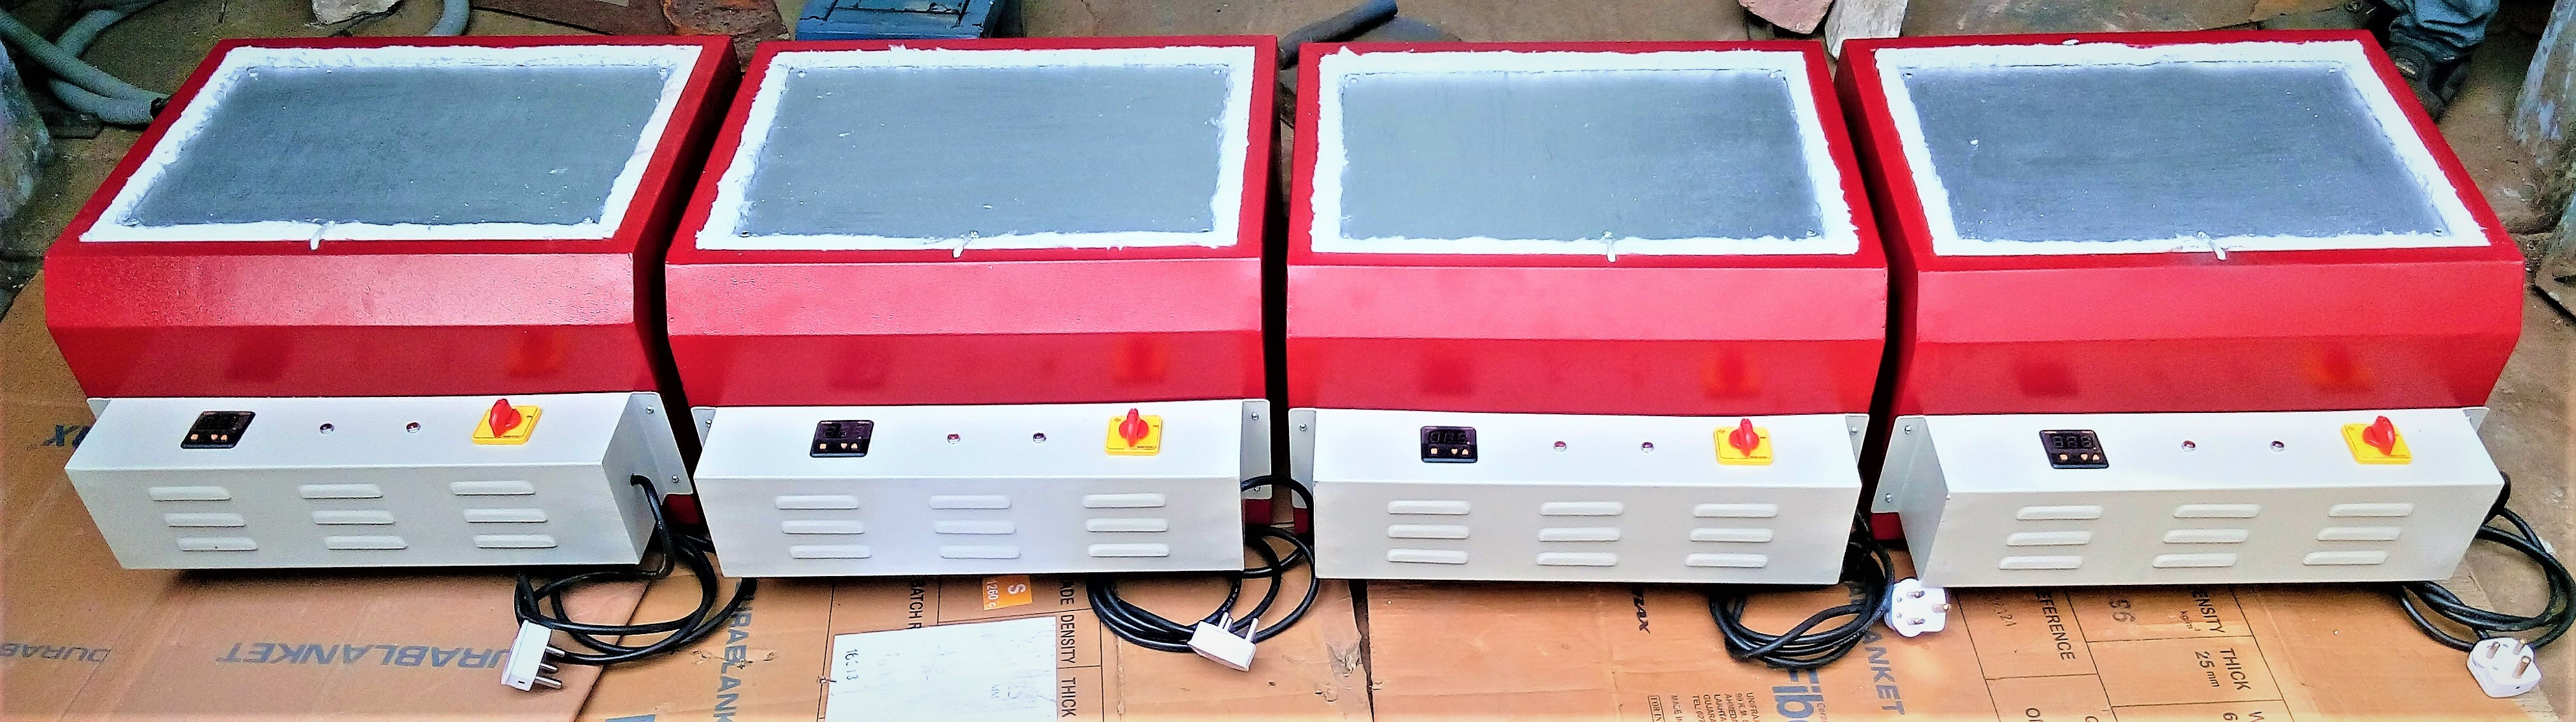 Electrical Hot Plate